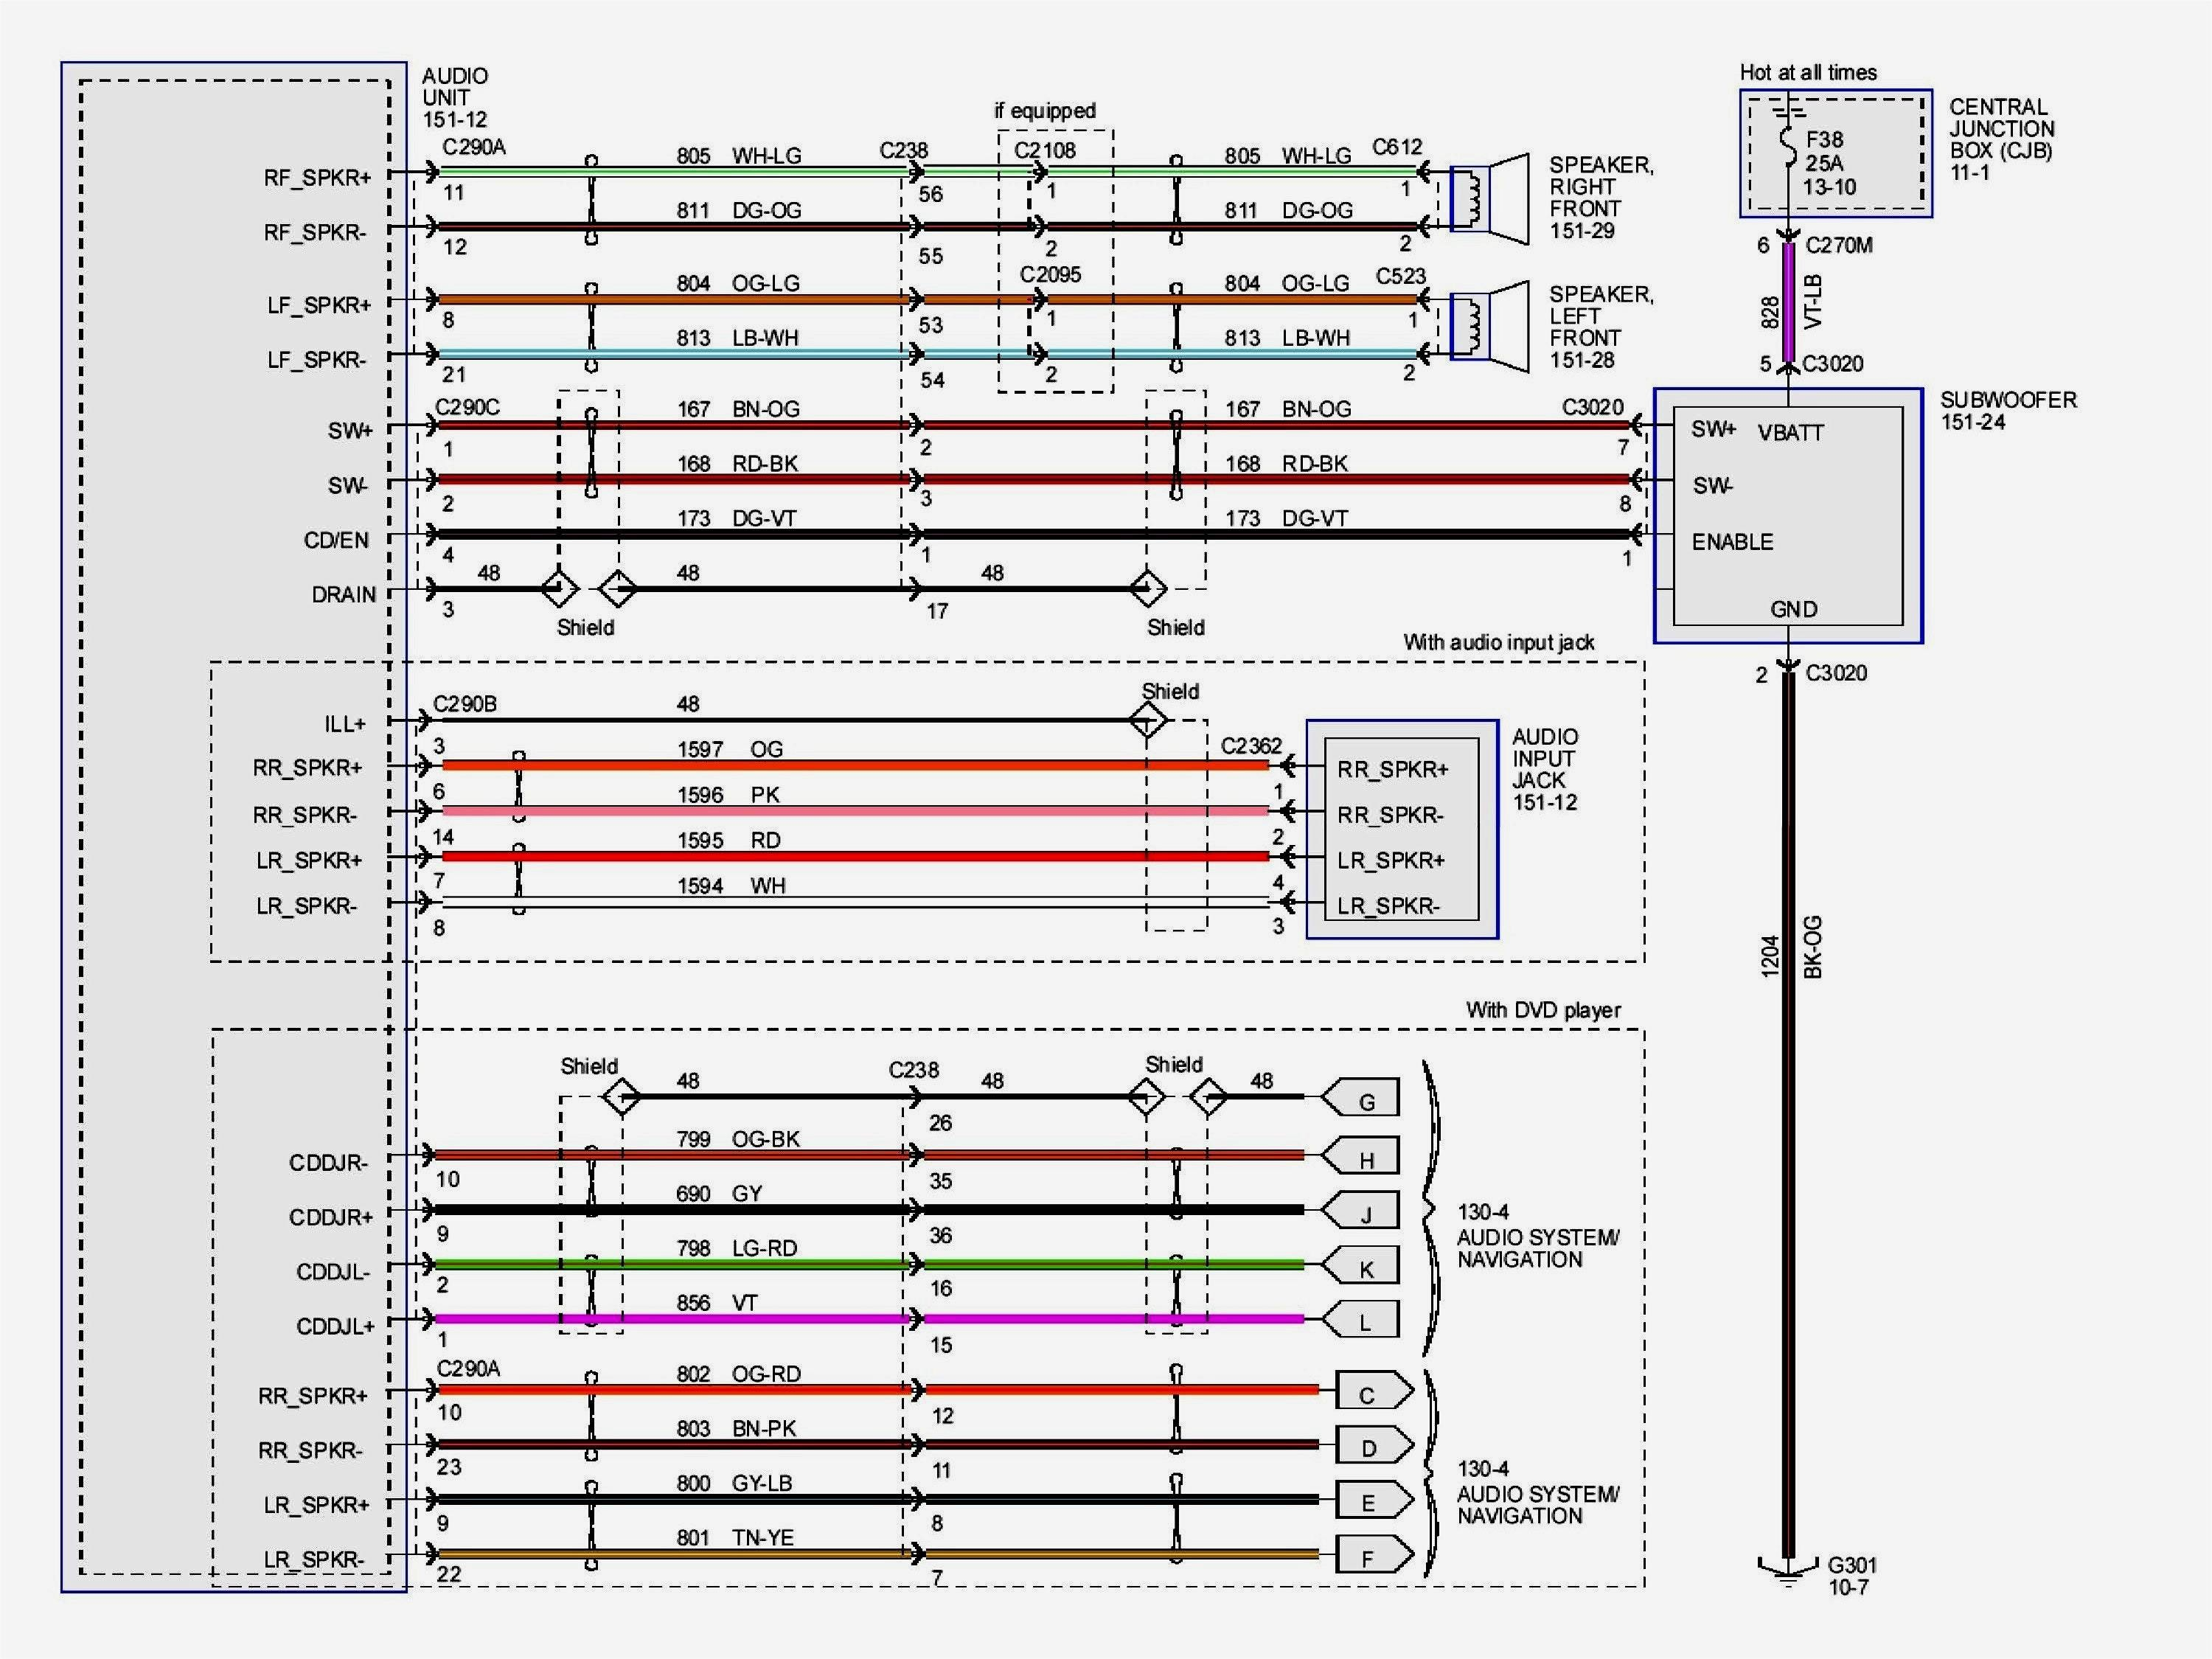 2007 ford escape wiring diagram example electrical wiring diagram u2022 rh 162 212 157 63 2007 Ford Mustang Wiring Diagram 2010 ford mustang headlight wiring diagram